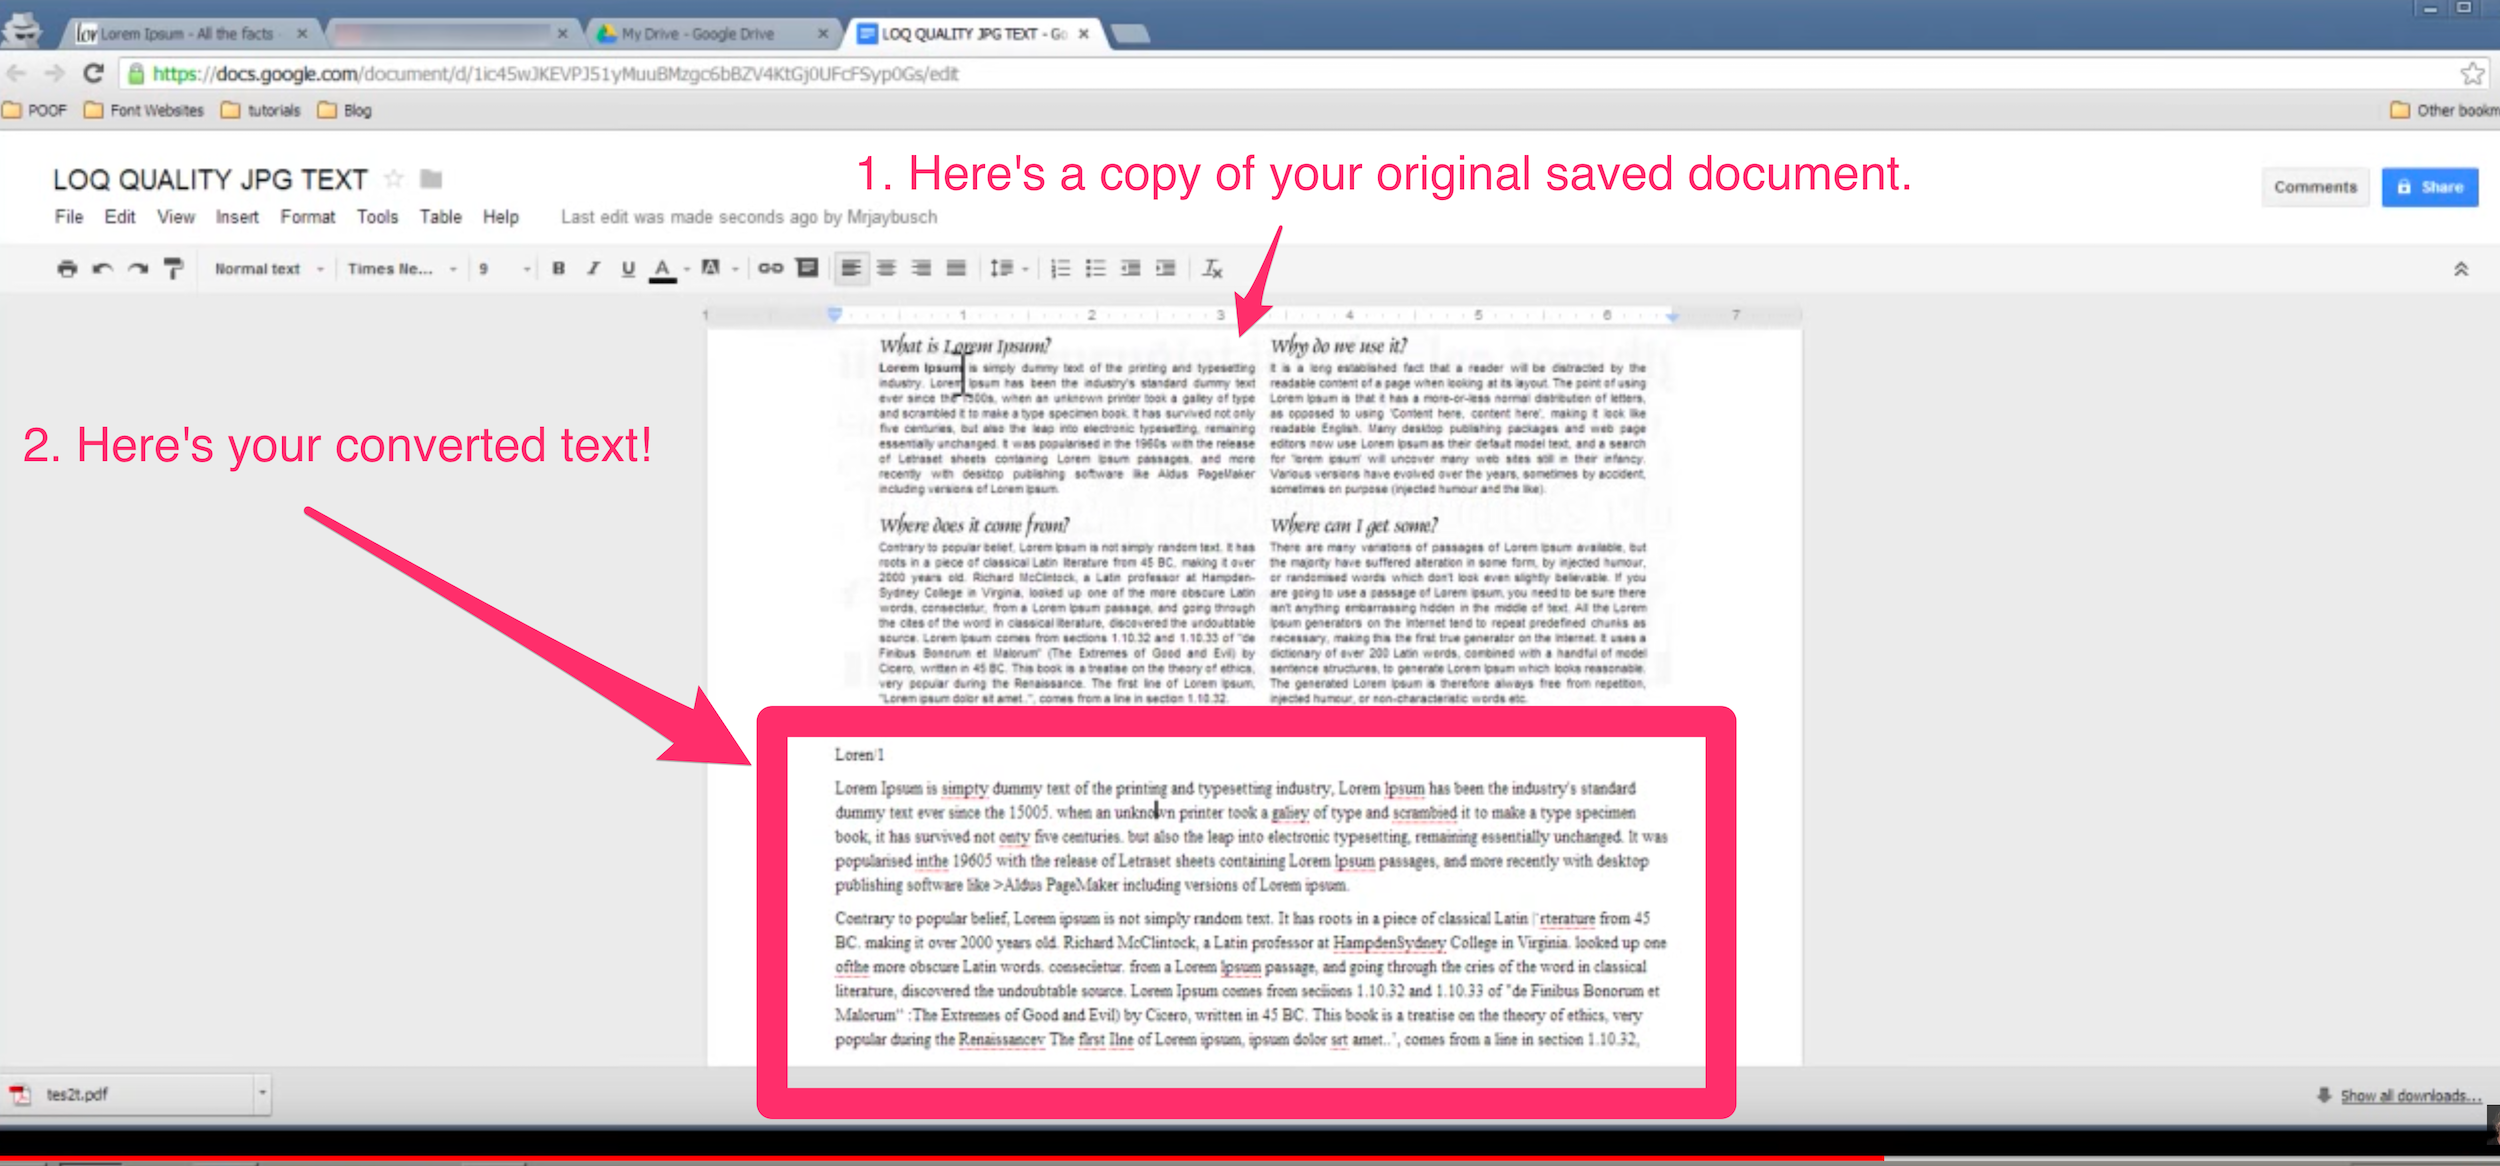 How To Extract Text From Pictures To Copy, Save And Amend FOR FREE!